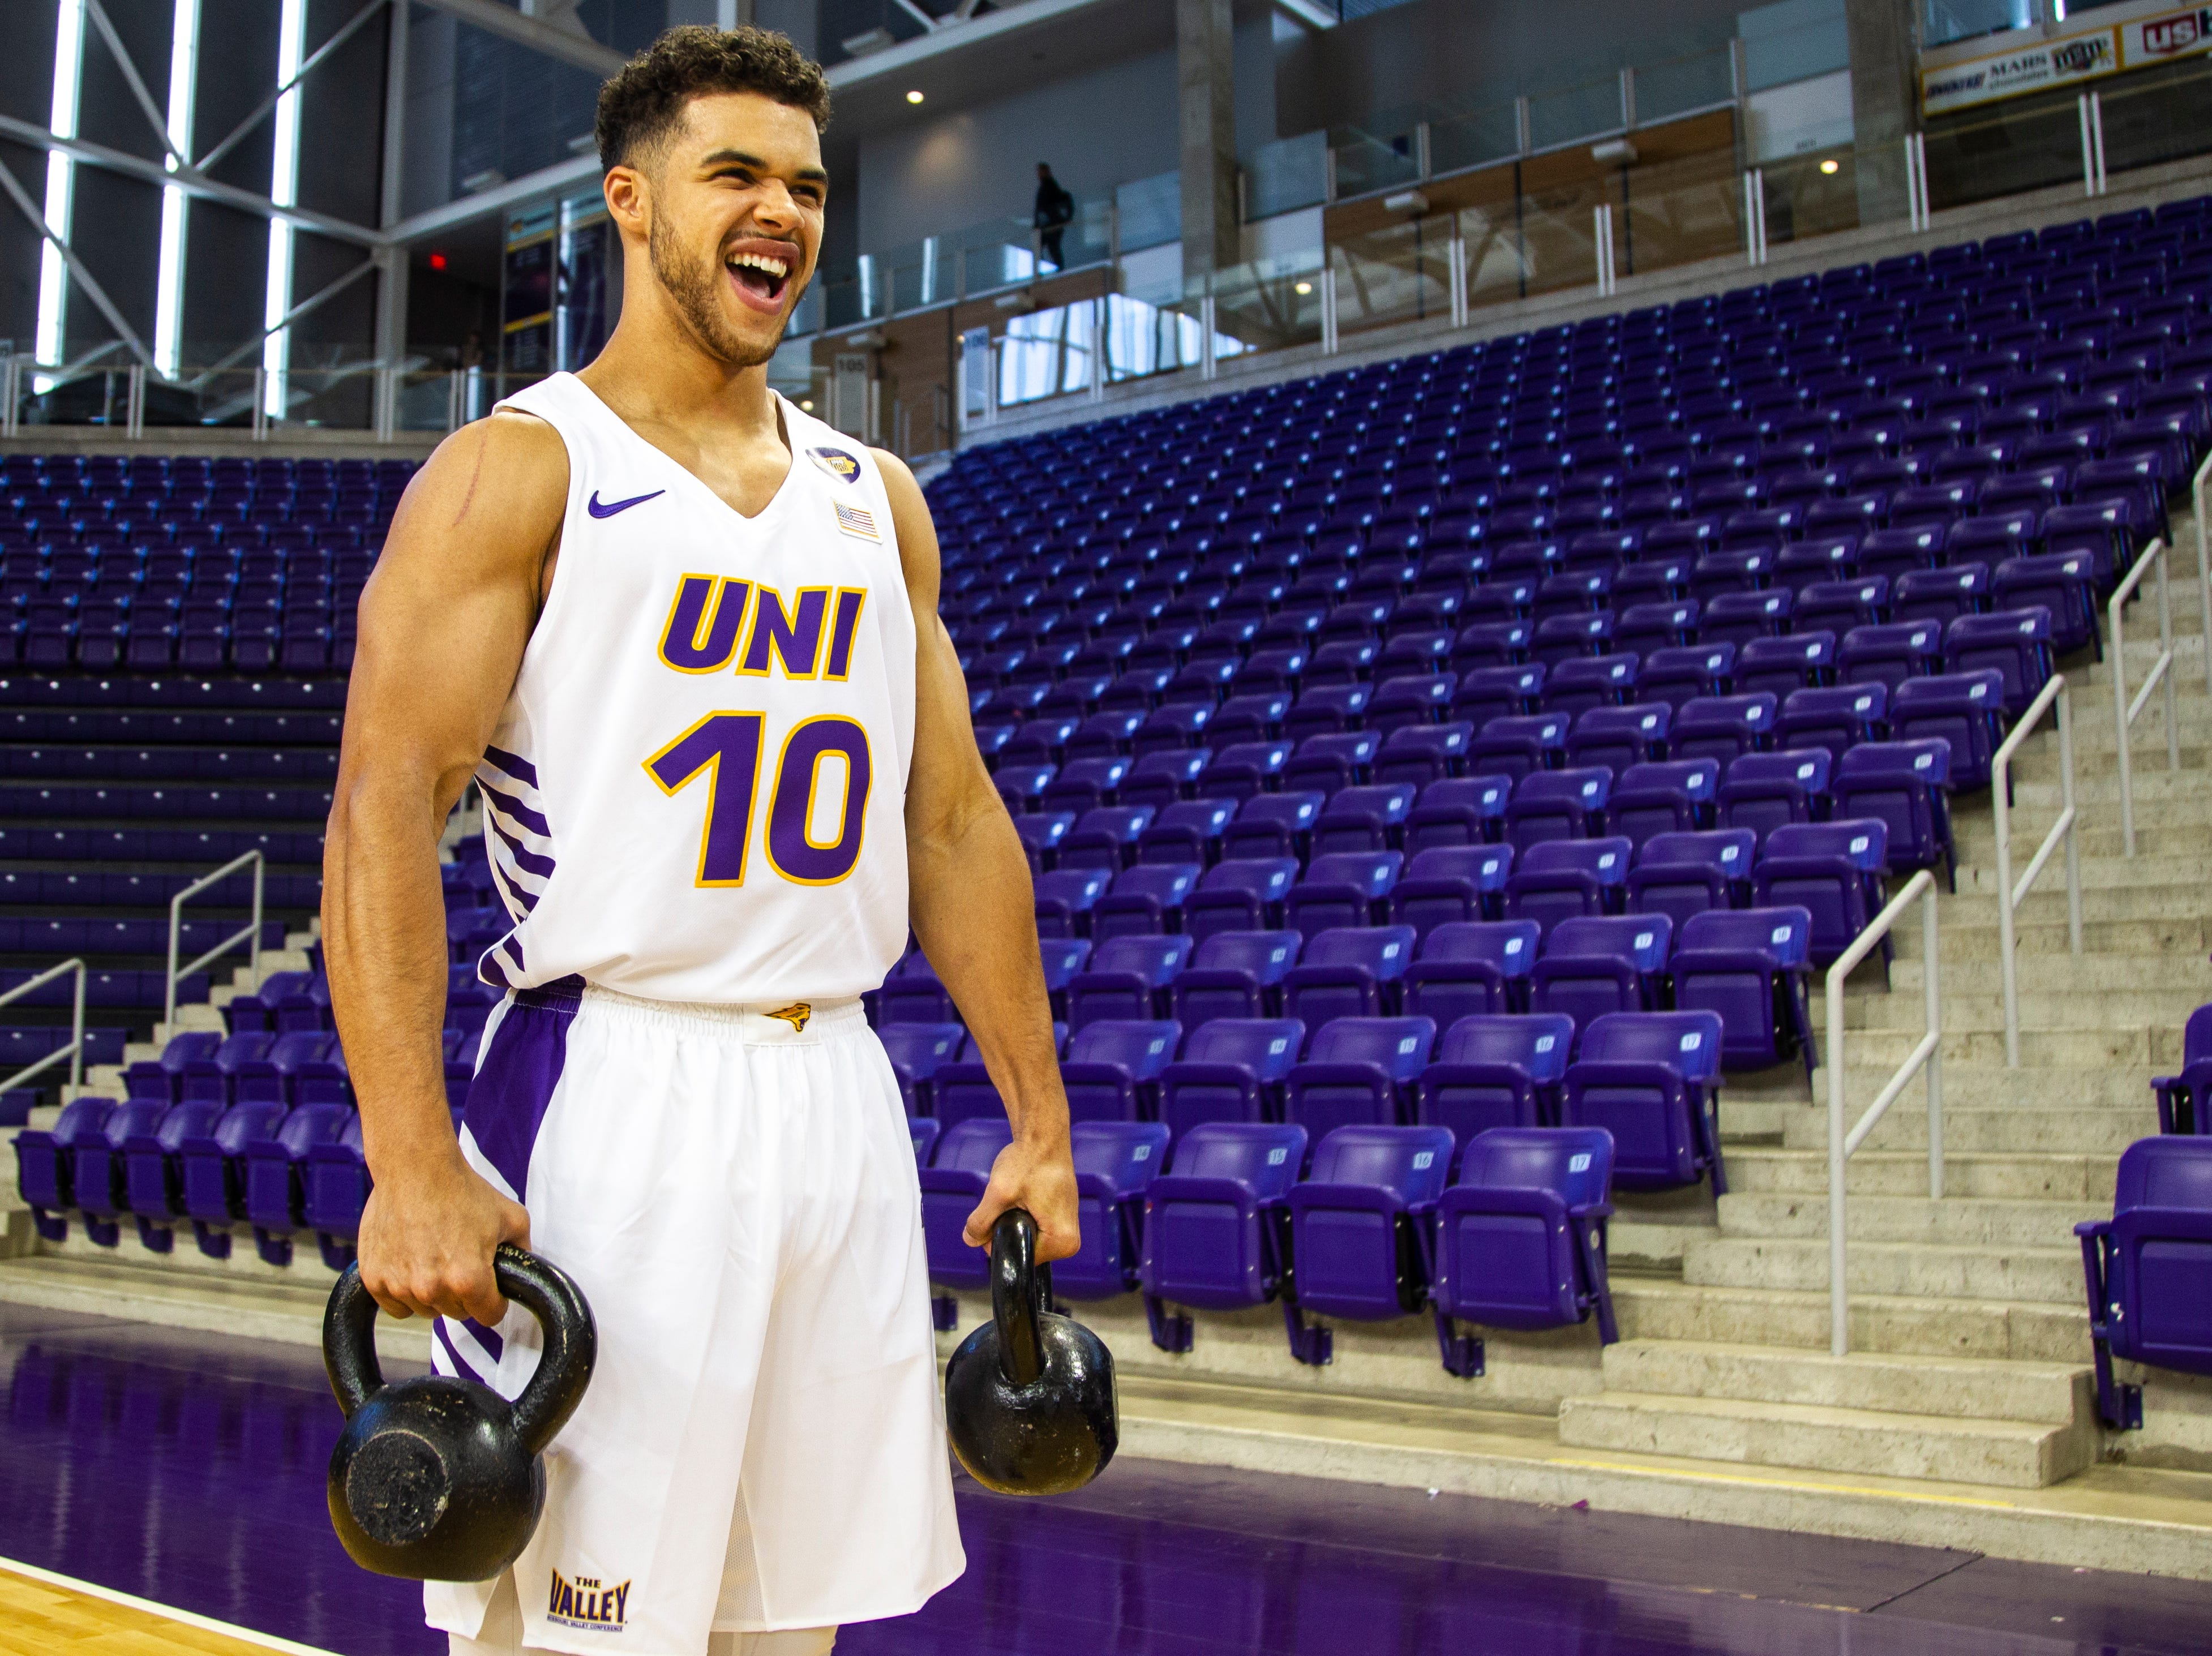 Northern Iowa guard Miles Wentzien (10) holds weights while having his photo taken during Panthers men's basketball media day on Wednesday, Oct. 17, 2018, at the McLeod Center in Cedar Falls.